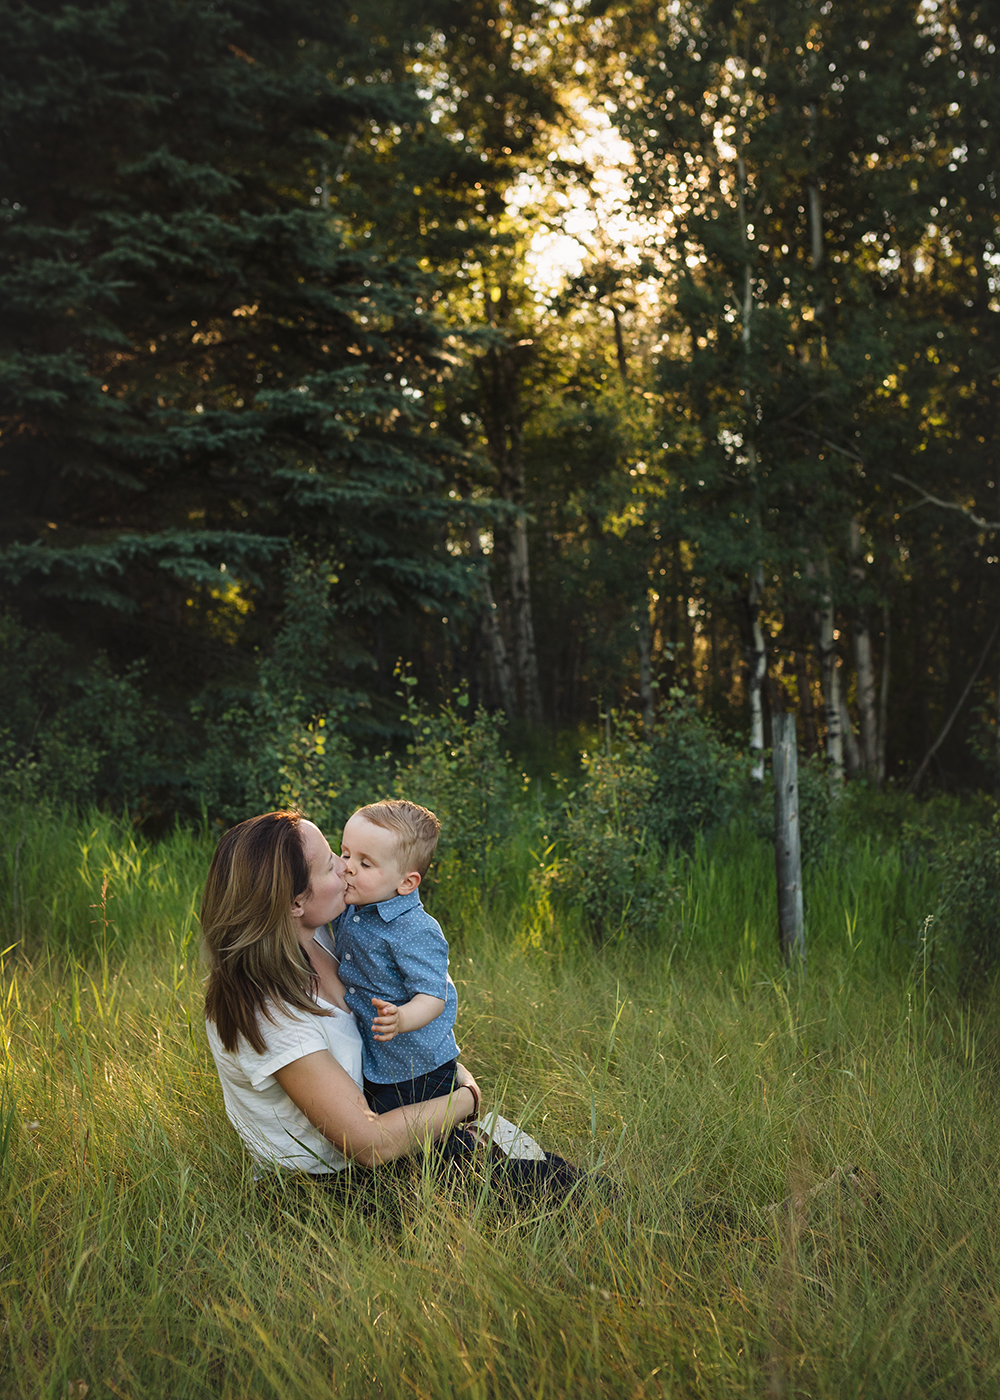 Edmonton Family Photographer_Berg Family Sneak Peek 9.jpg